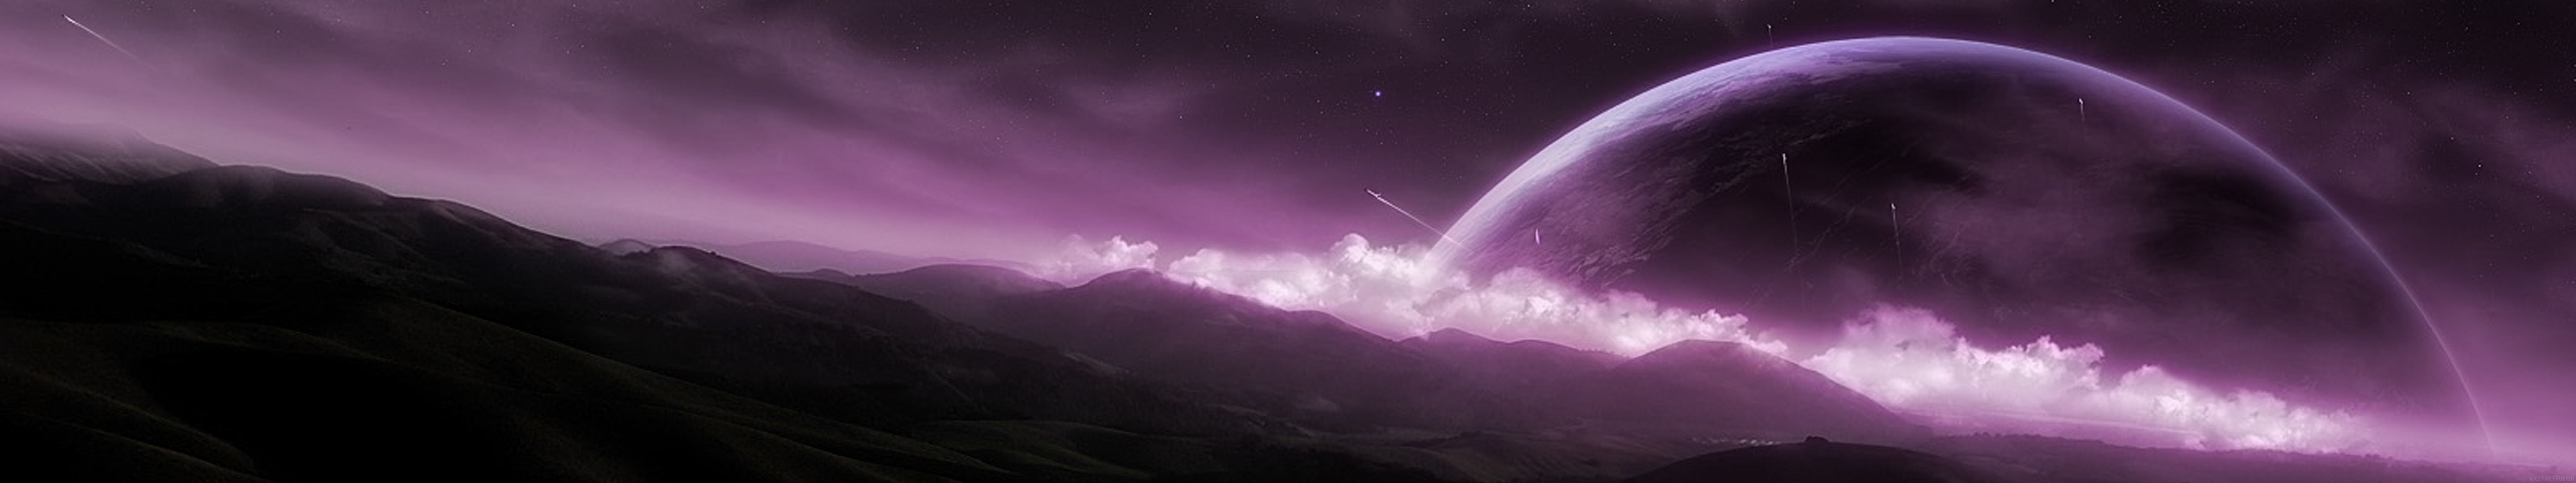 5760x1080 Wallpapers